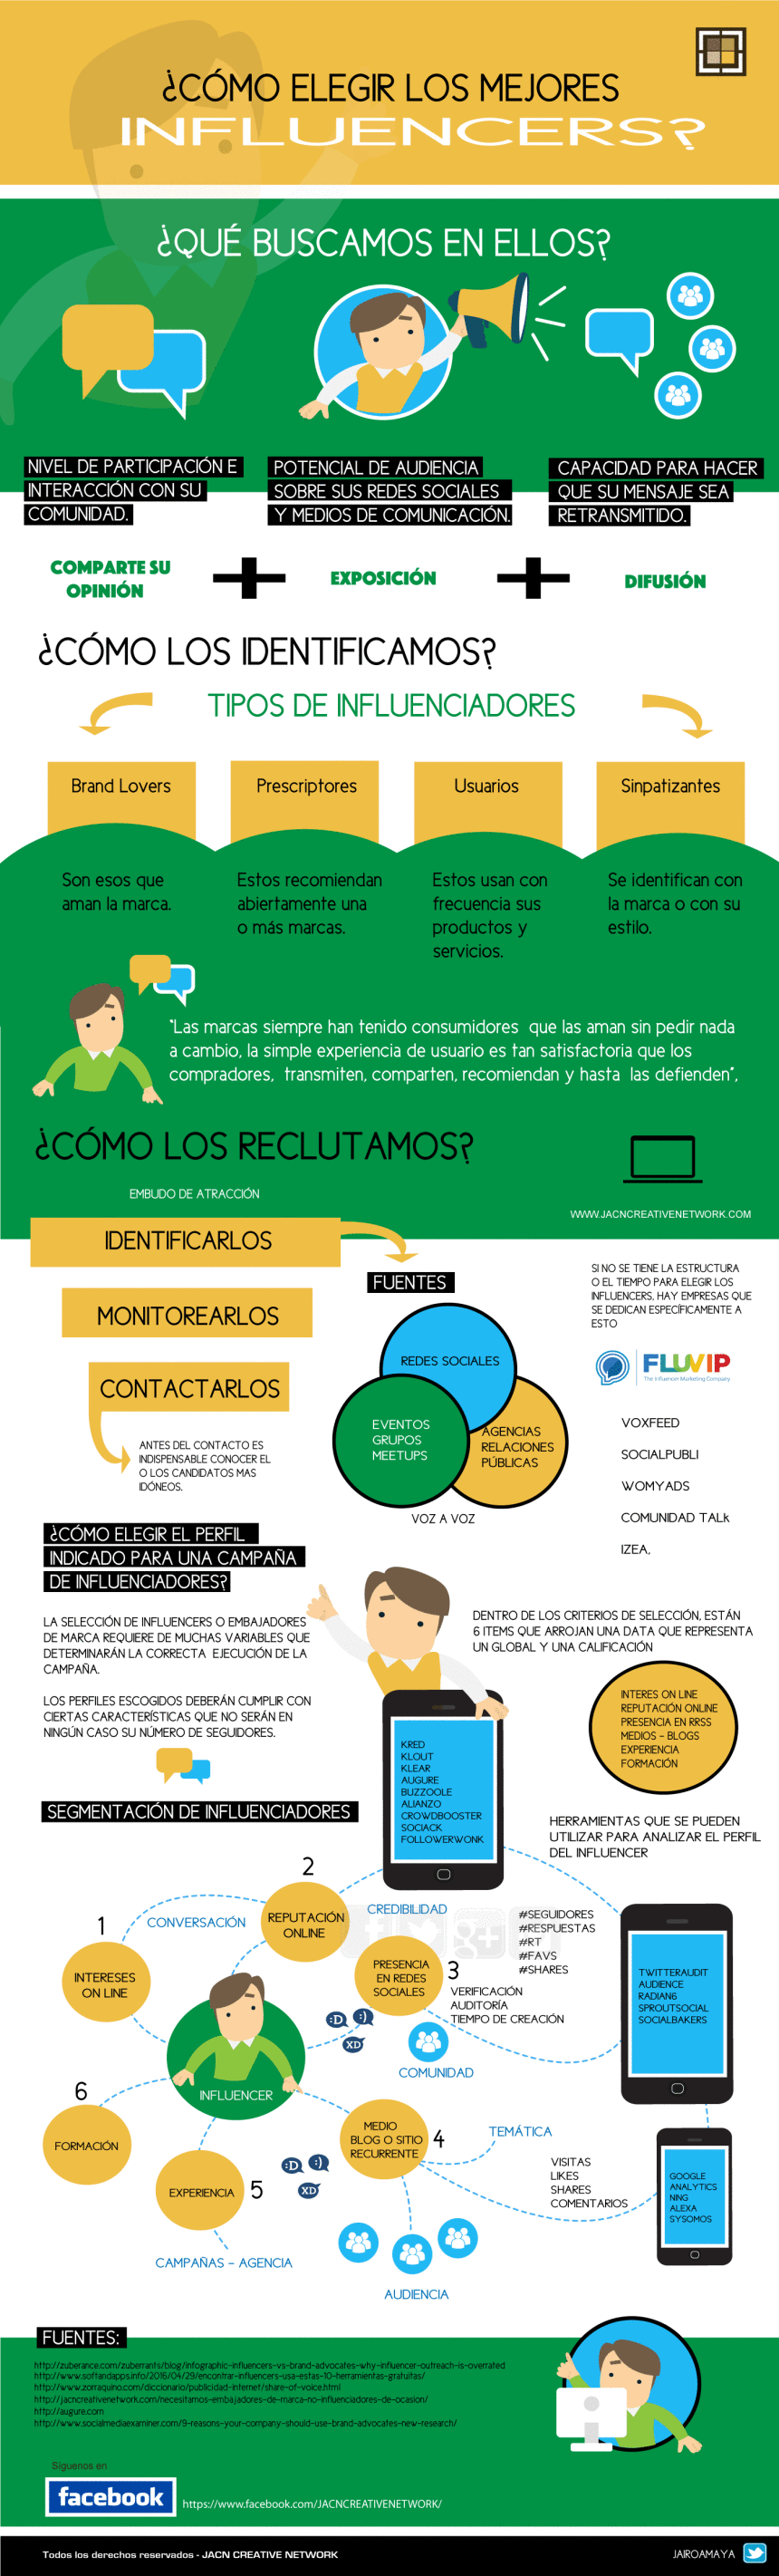 Influencers - infografía